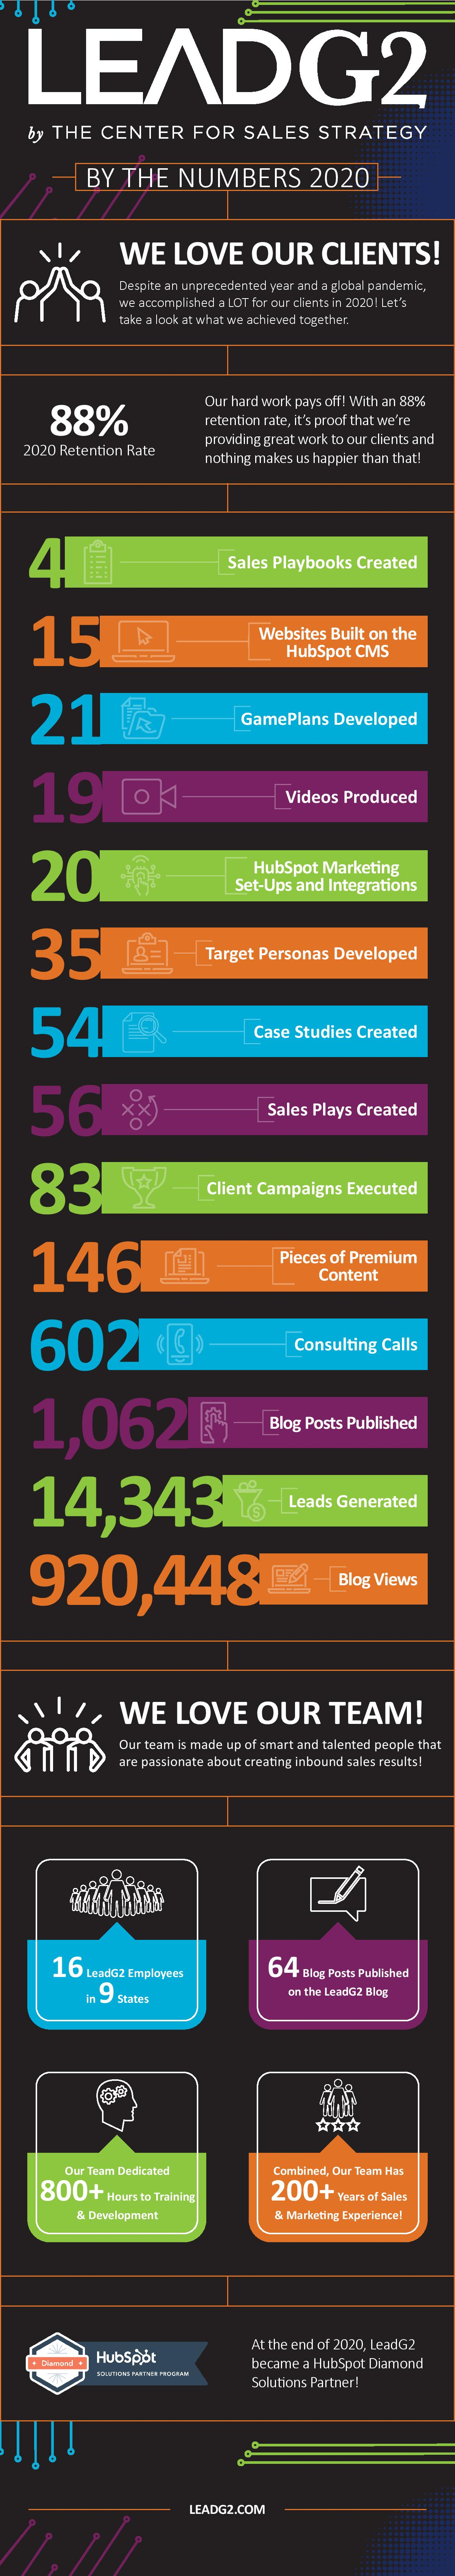 LeadG2-Infographic_2020 By the Numbers-page-001